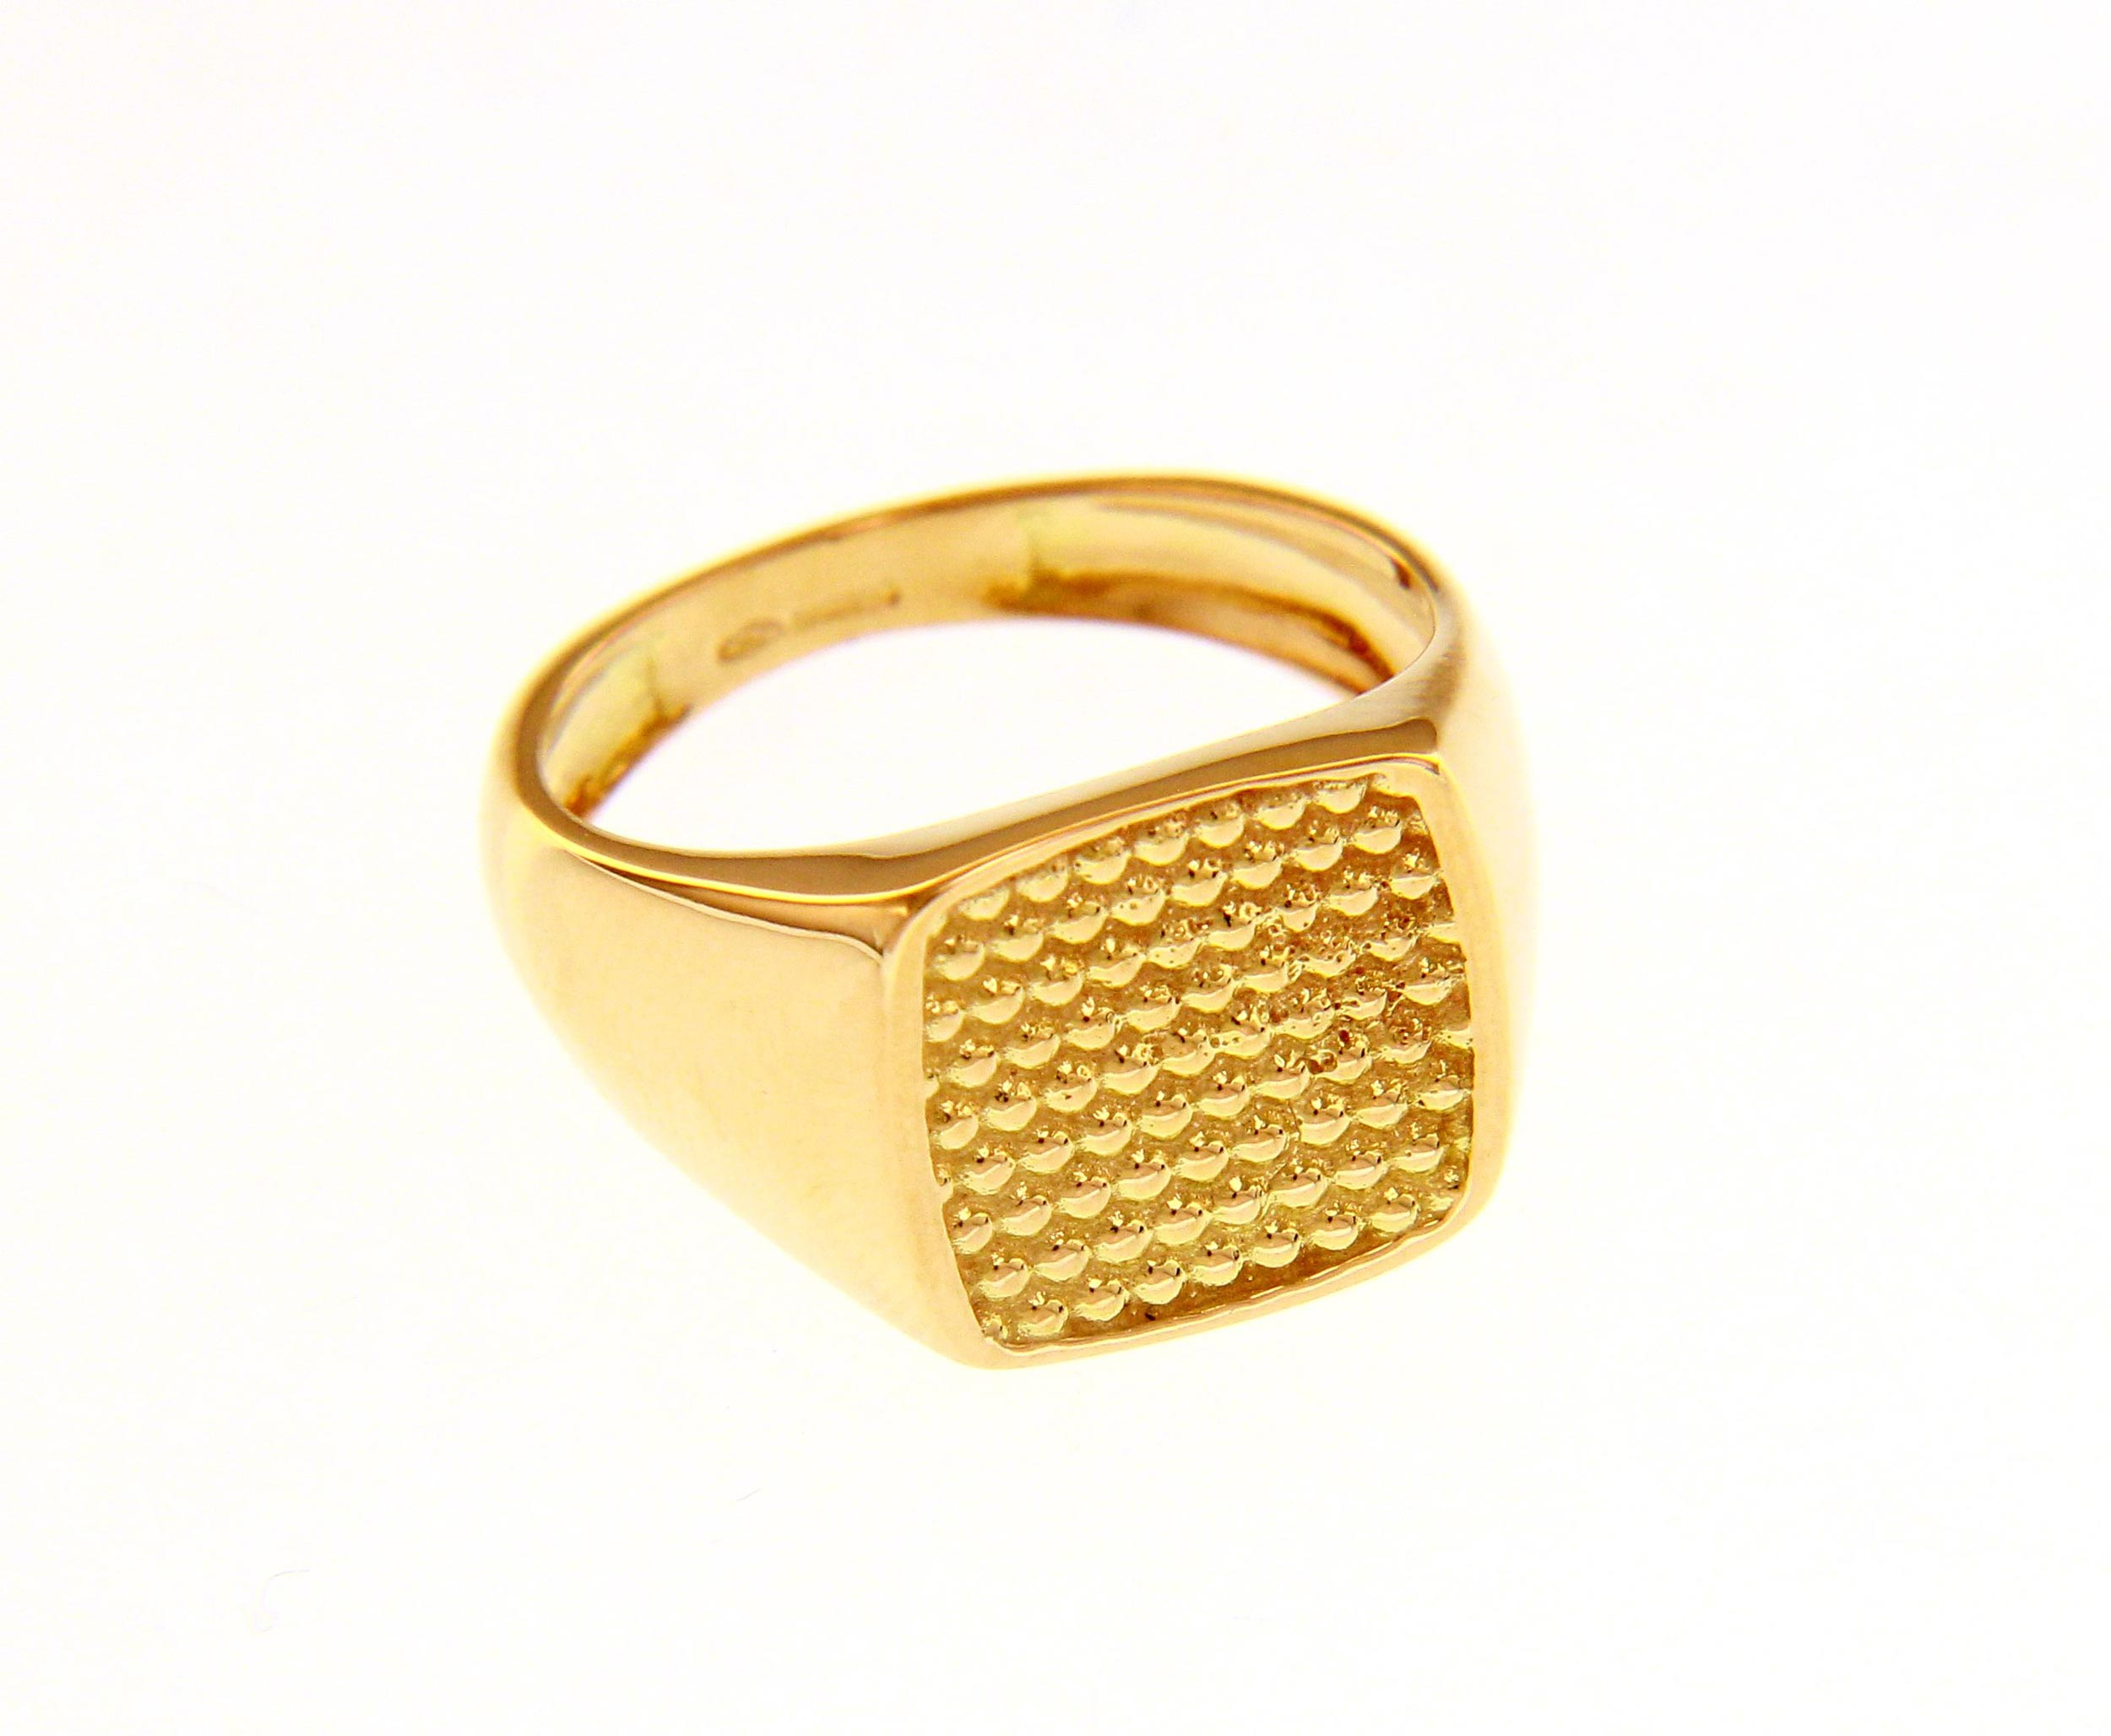 Stylish and bold 18ct Yellow gold ring with Cubic Zirconia